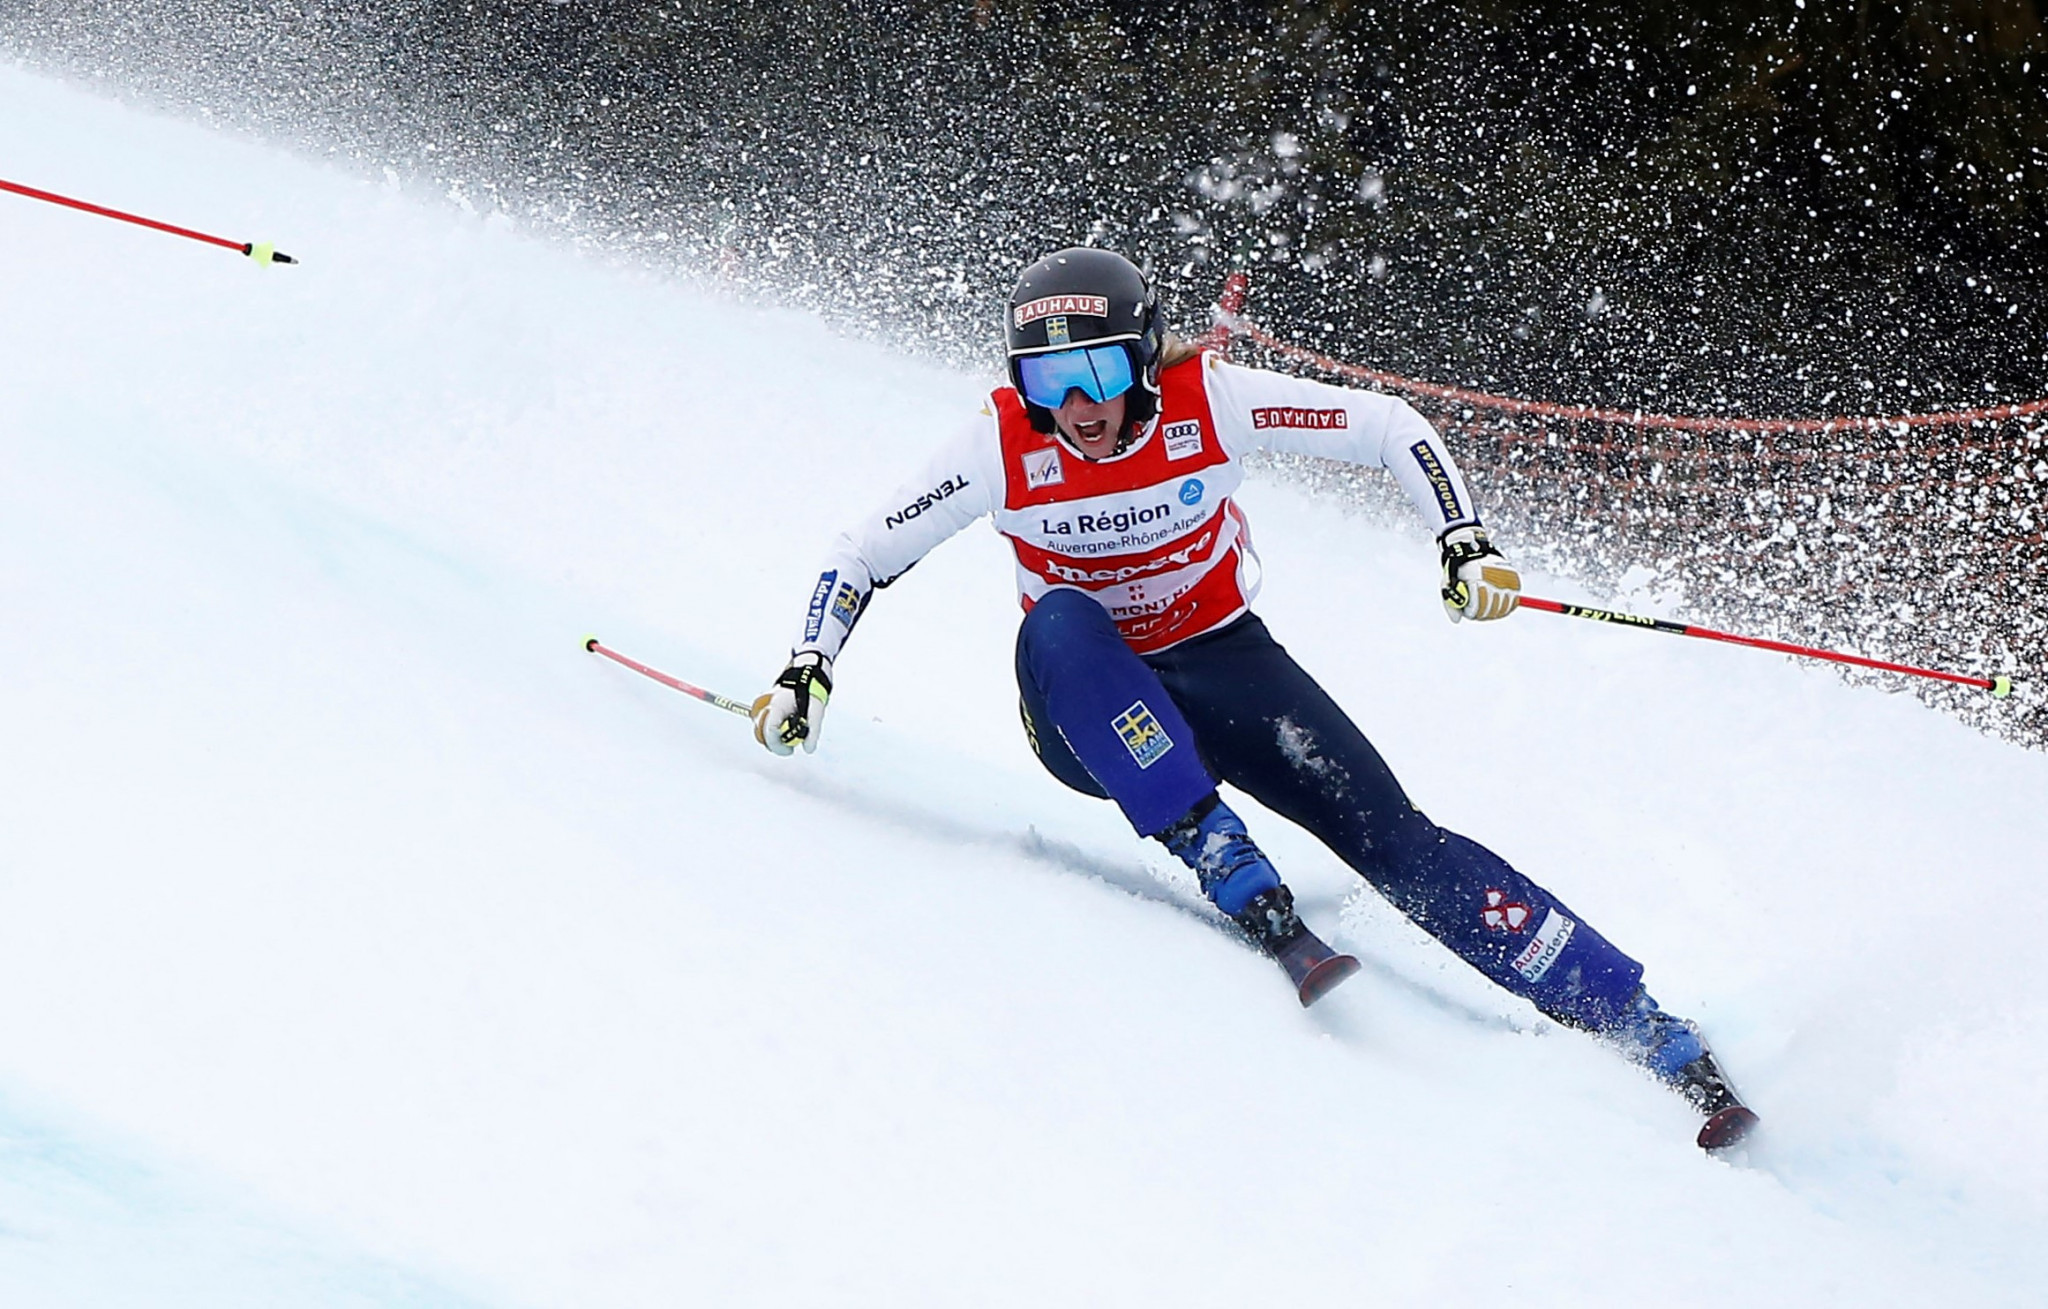 Swedes Mobärg and Edebo victorious at first FIS Ski Cross World Cup of the season